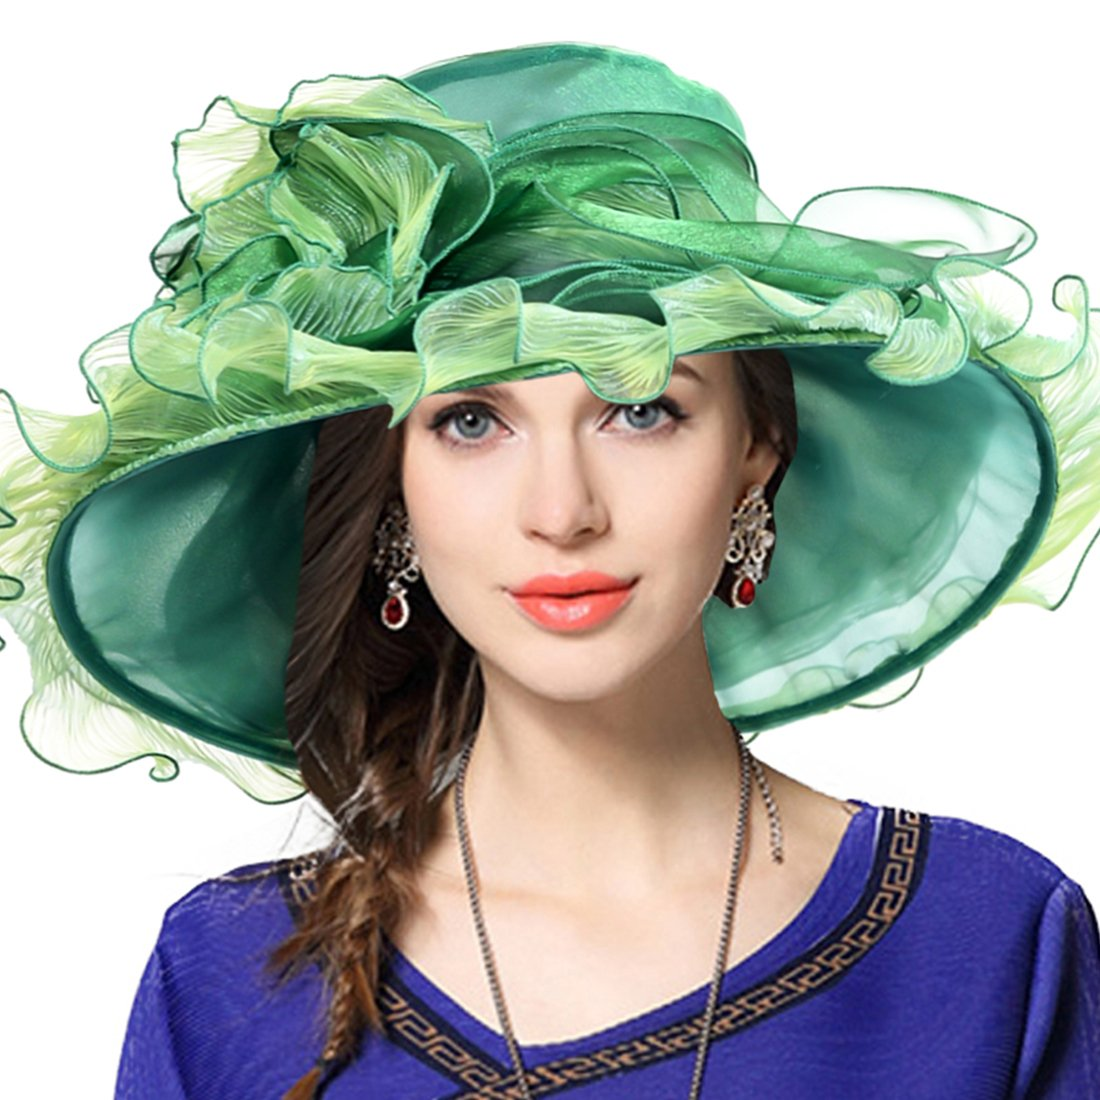 Rufflegreen JESSE · RENA Women's Church Derby Dress Fascinator Bridal Cap British Tea Party Wedding Hat